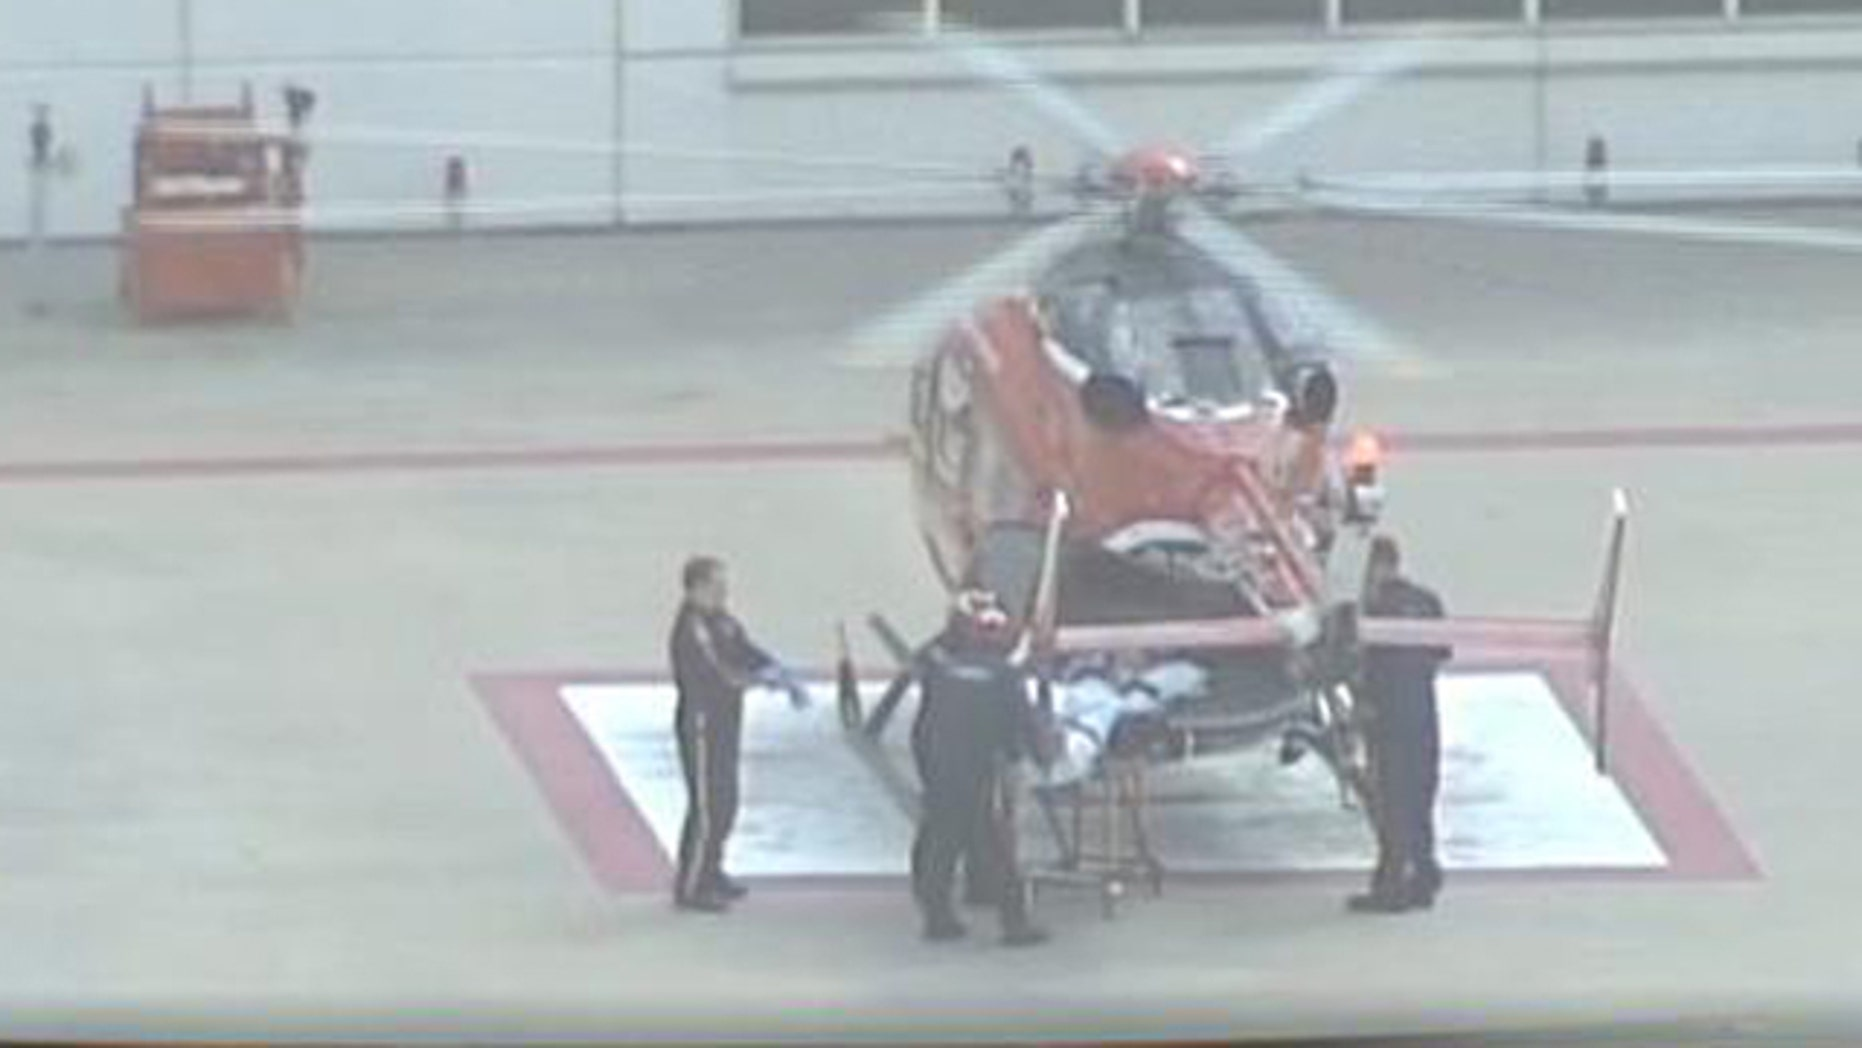 June 17, 2013: A medical helicopter responds after a teen is bitten at a South Texas beach.